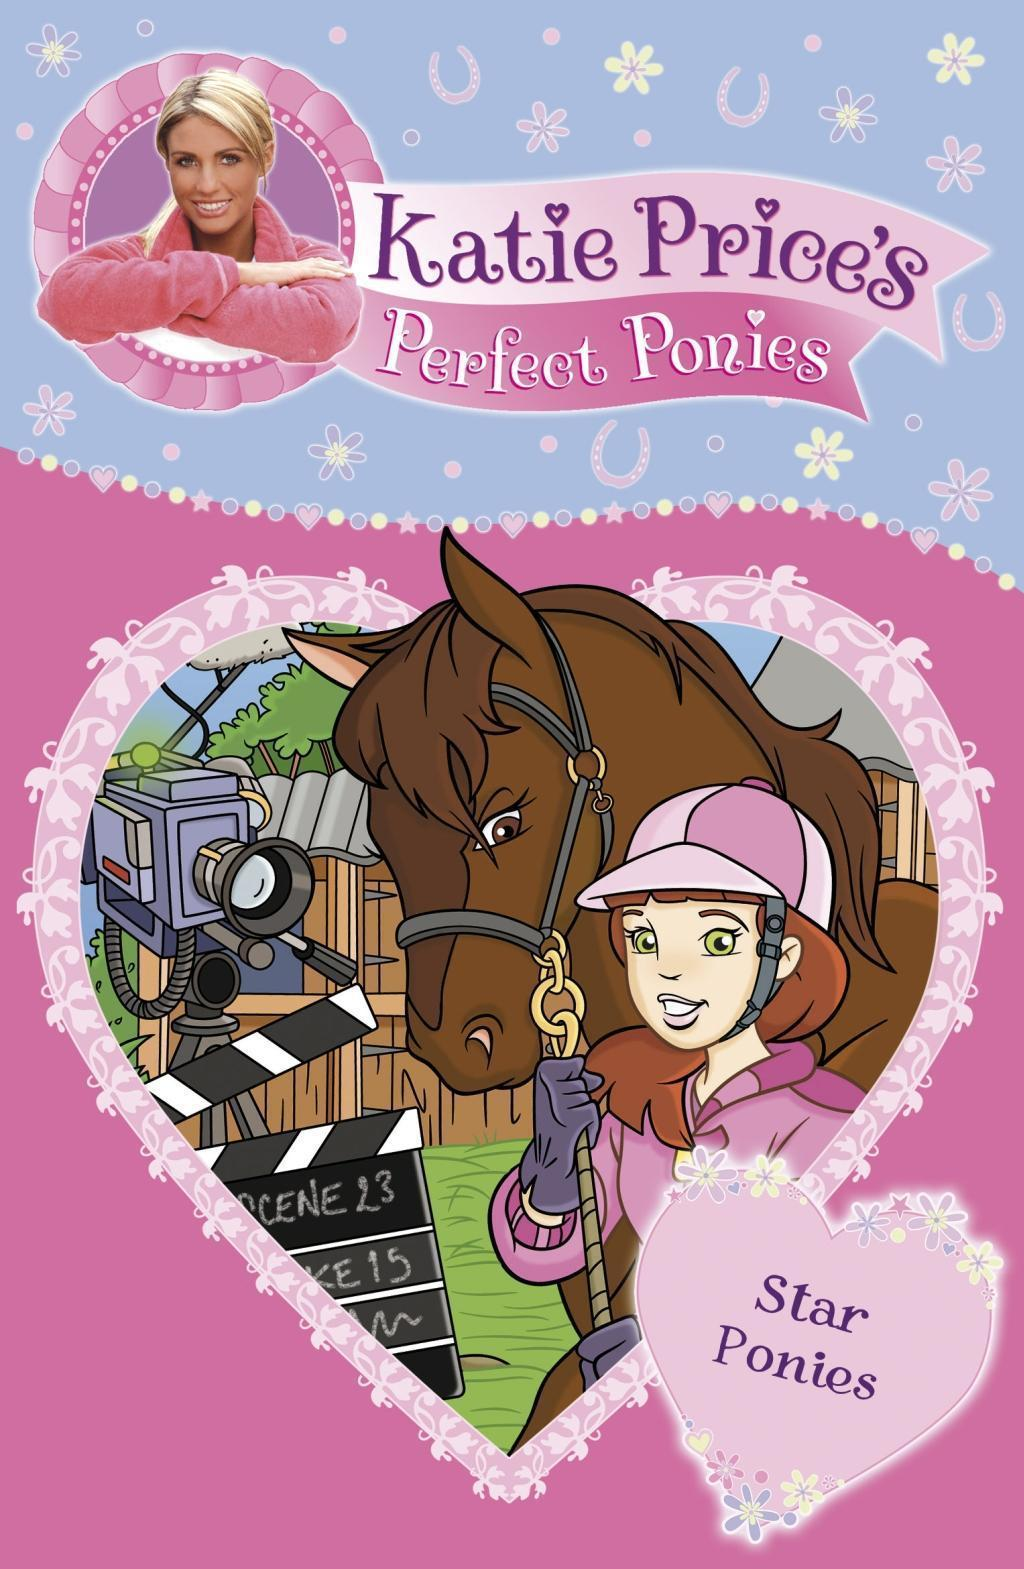 Katie Price's Perfect Ponies: Star Ponies